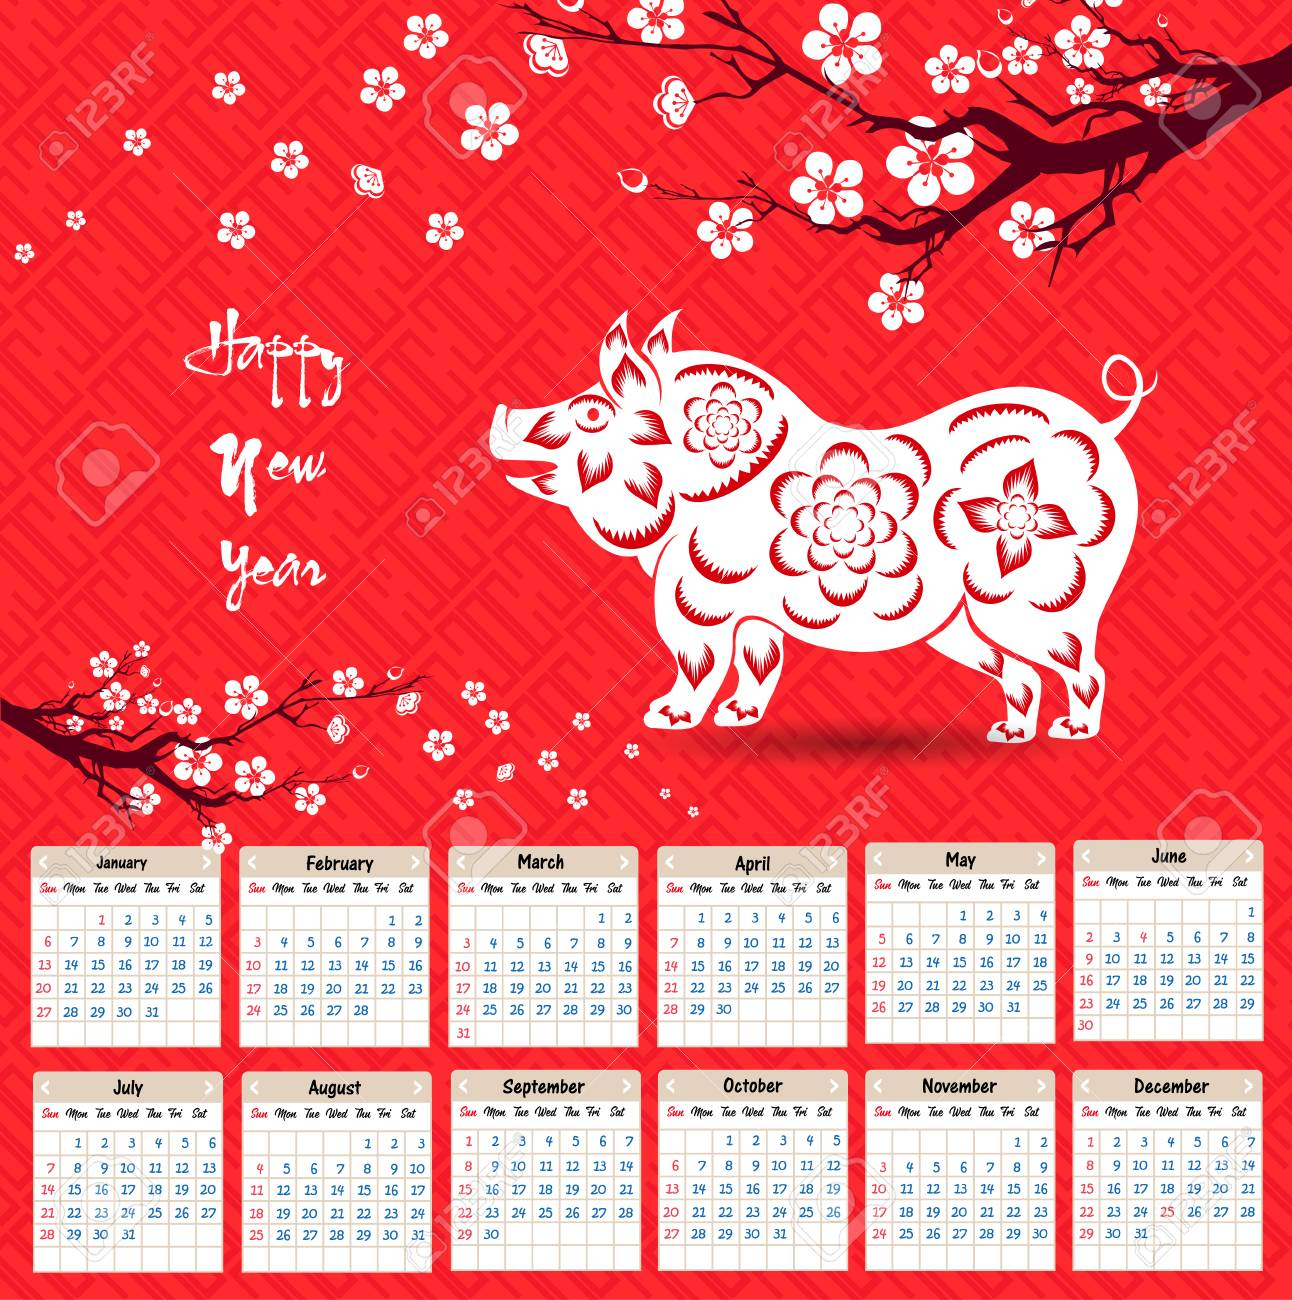 chinese calendar 2019 year of the pig vector design stock vector 100756679